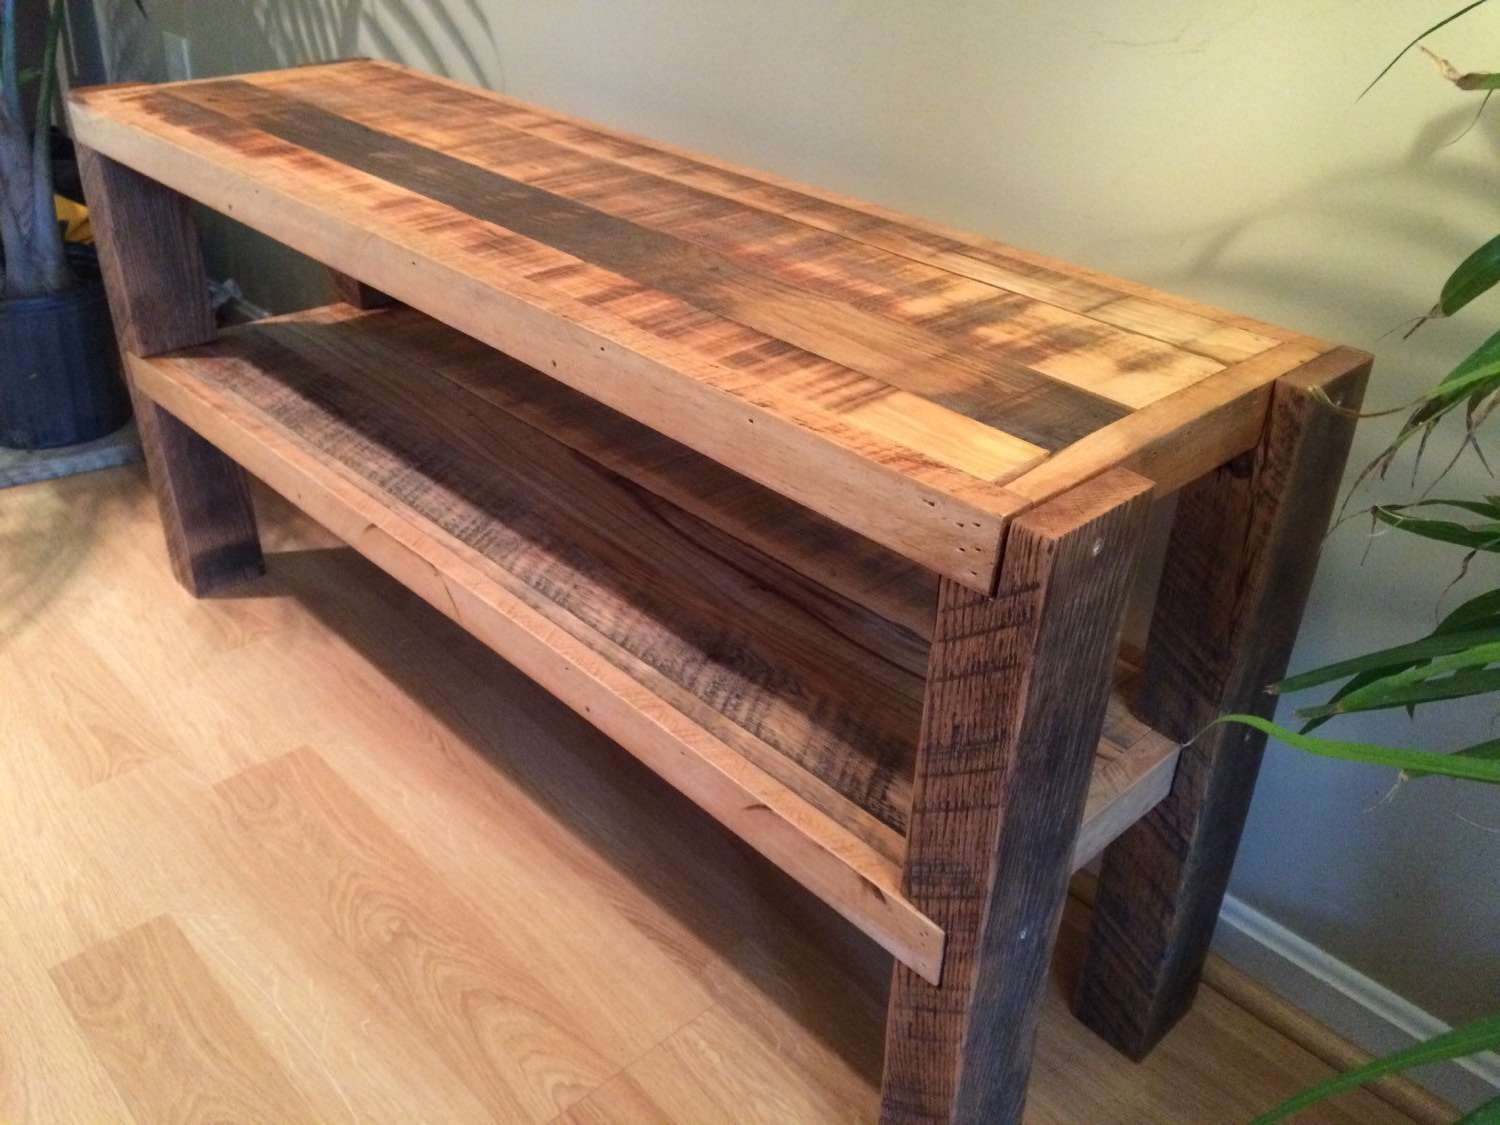 Reclaimed Wood Notched Leg Media Console / Tv Stand W/ Pertaining To Recycled Wood Tv Stands (View 3 of 15)